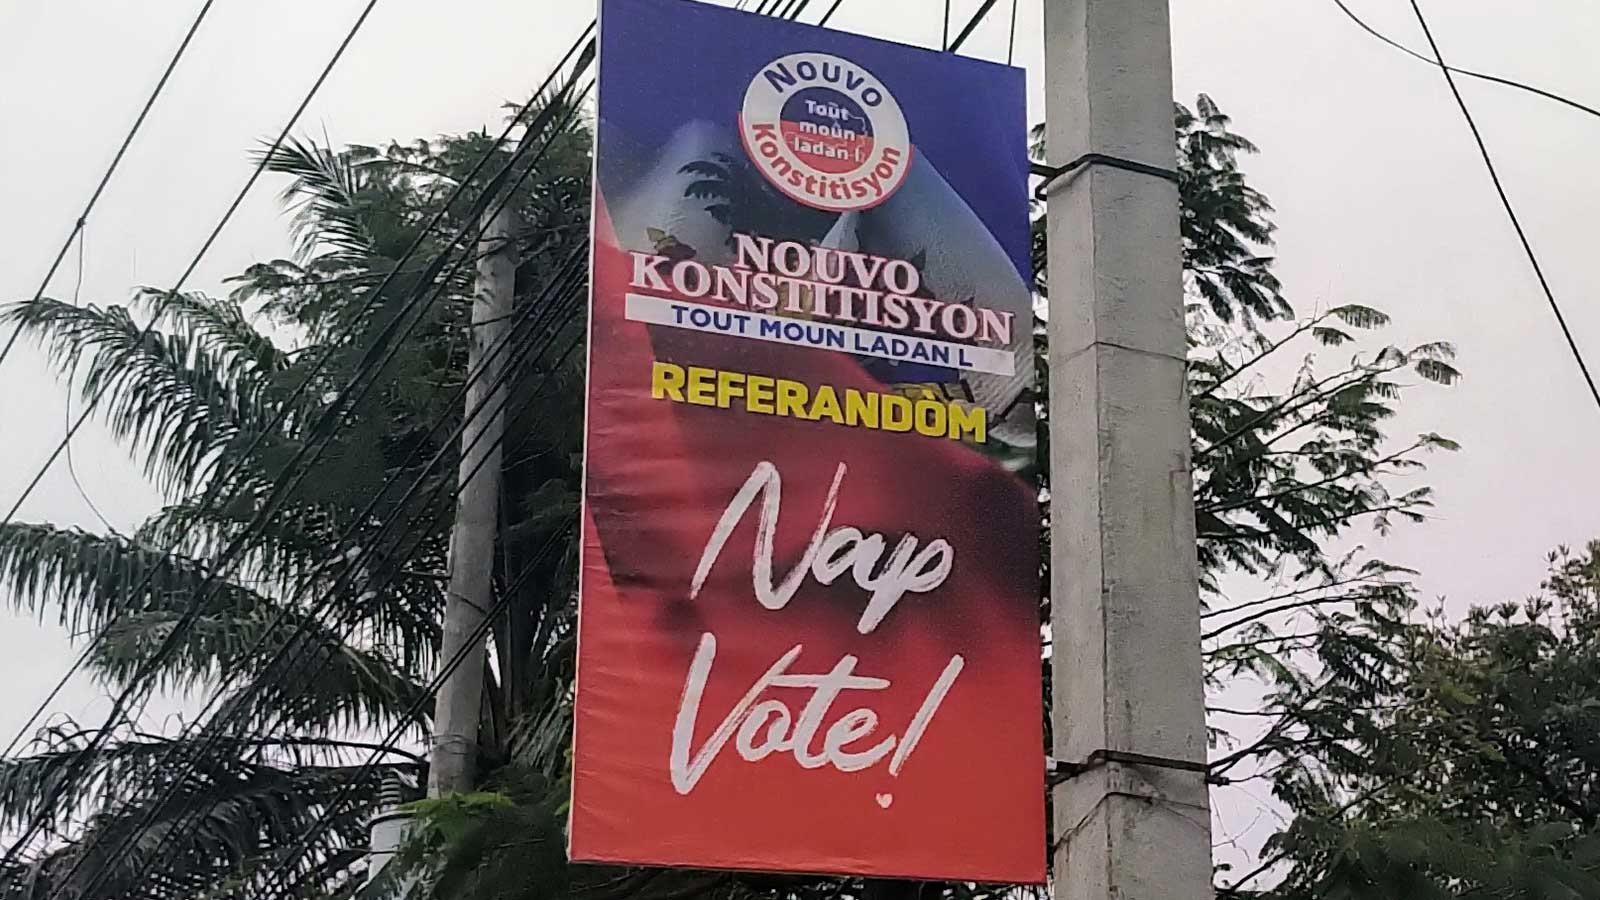 Haiti: Billboards are plastered across Port-au-Prince and throughout the country